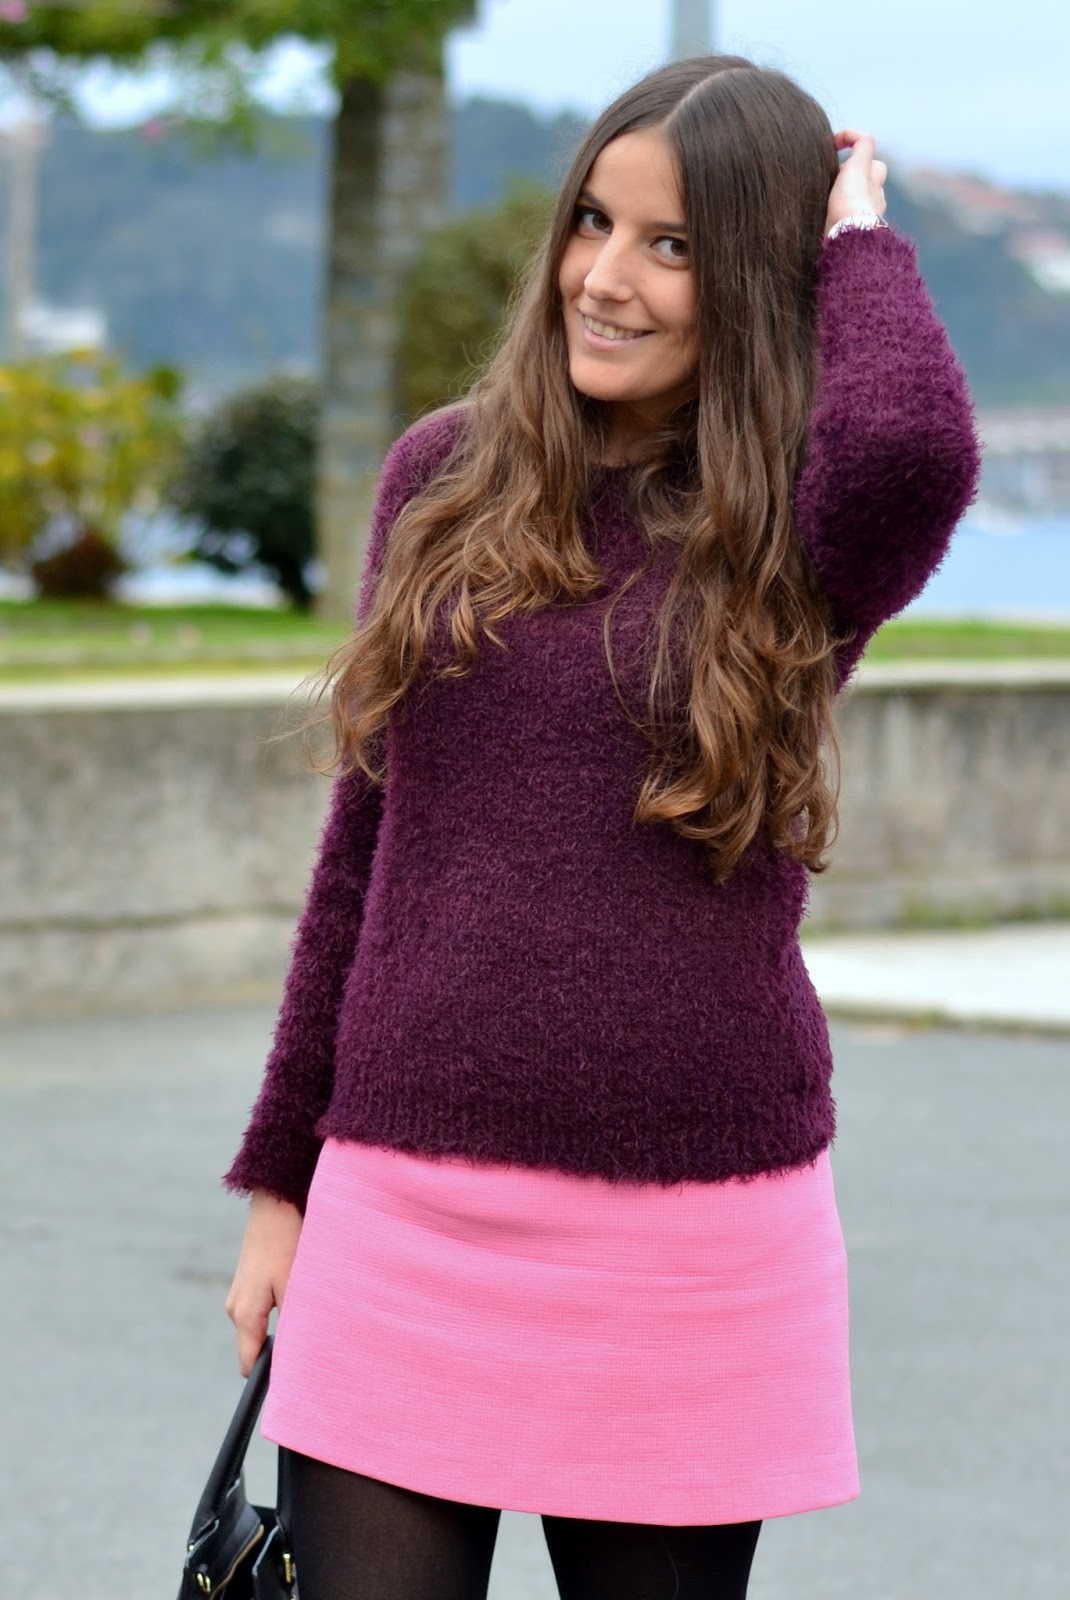 looks purple sweater and pink skirt